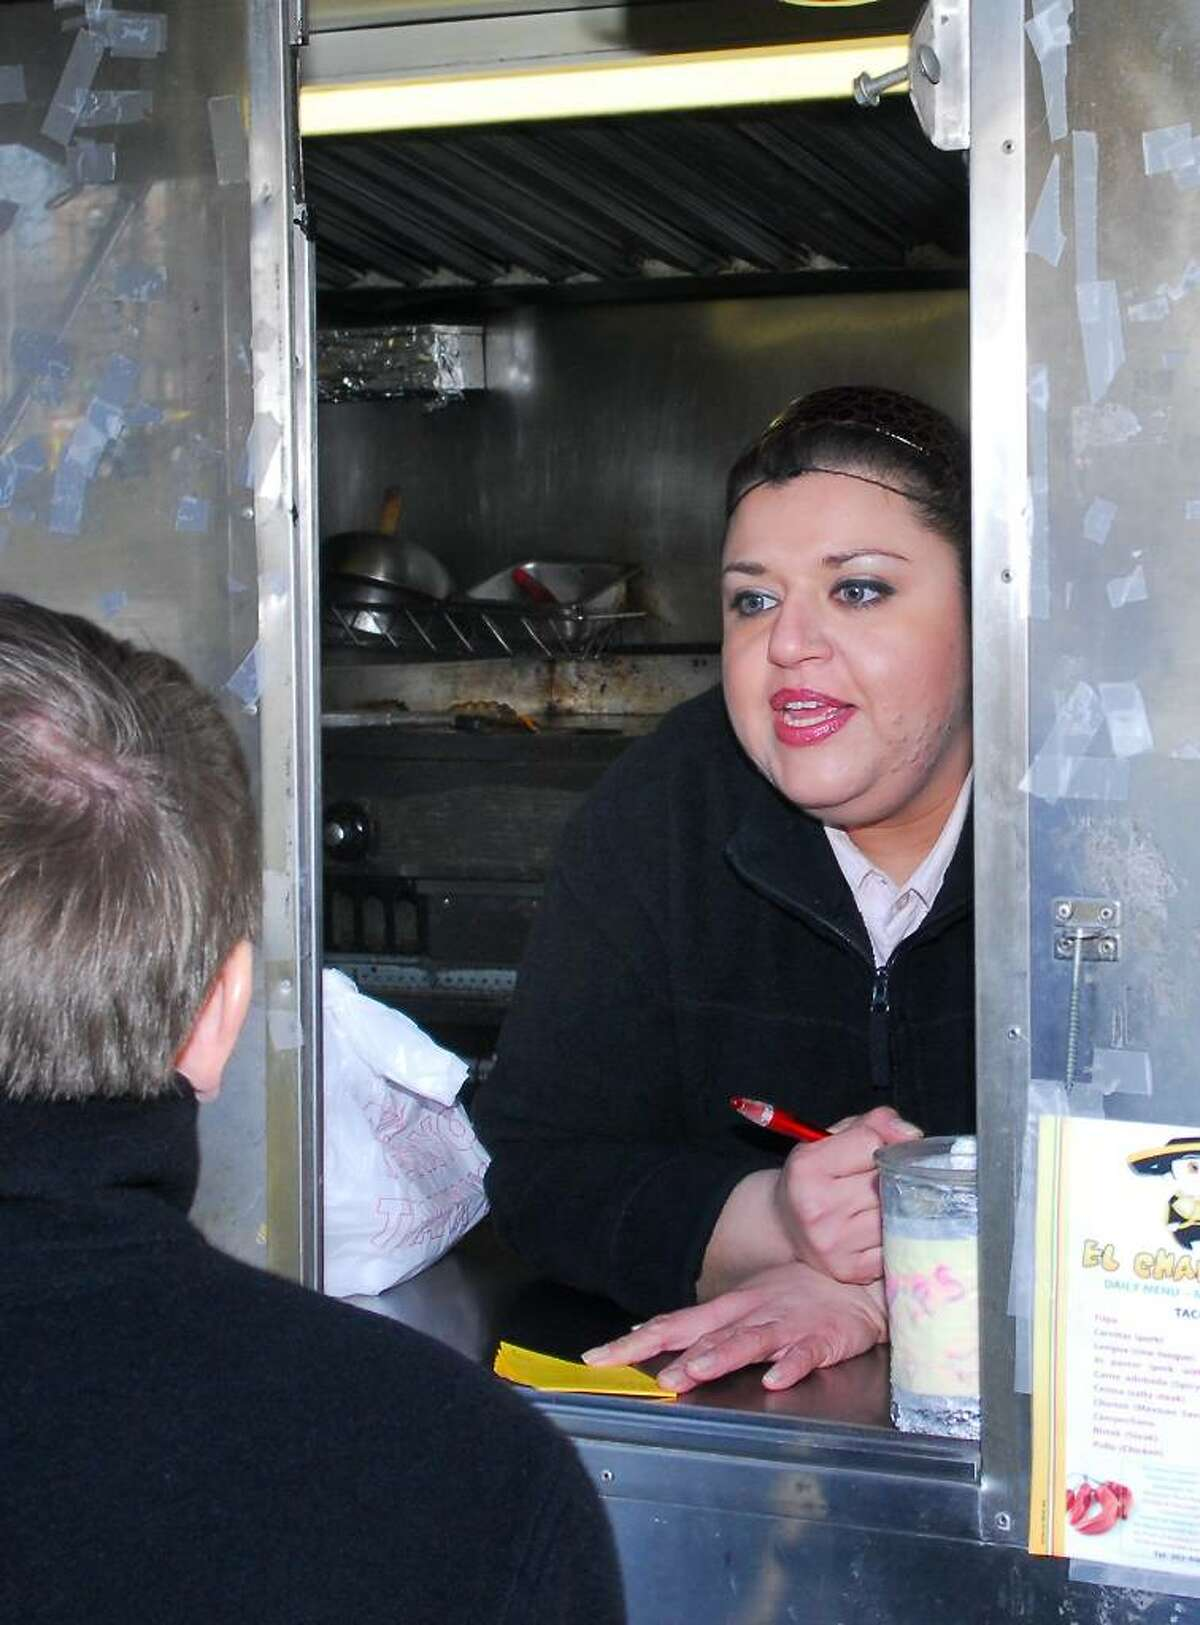 Alex Terron, a proprietor of El Charrito takes an order inside her truck parked on Richmond Place in Stamford on Tuesday Dec. 29th, 2009.